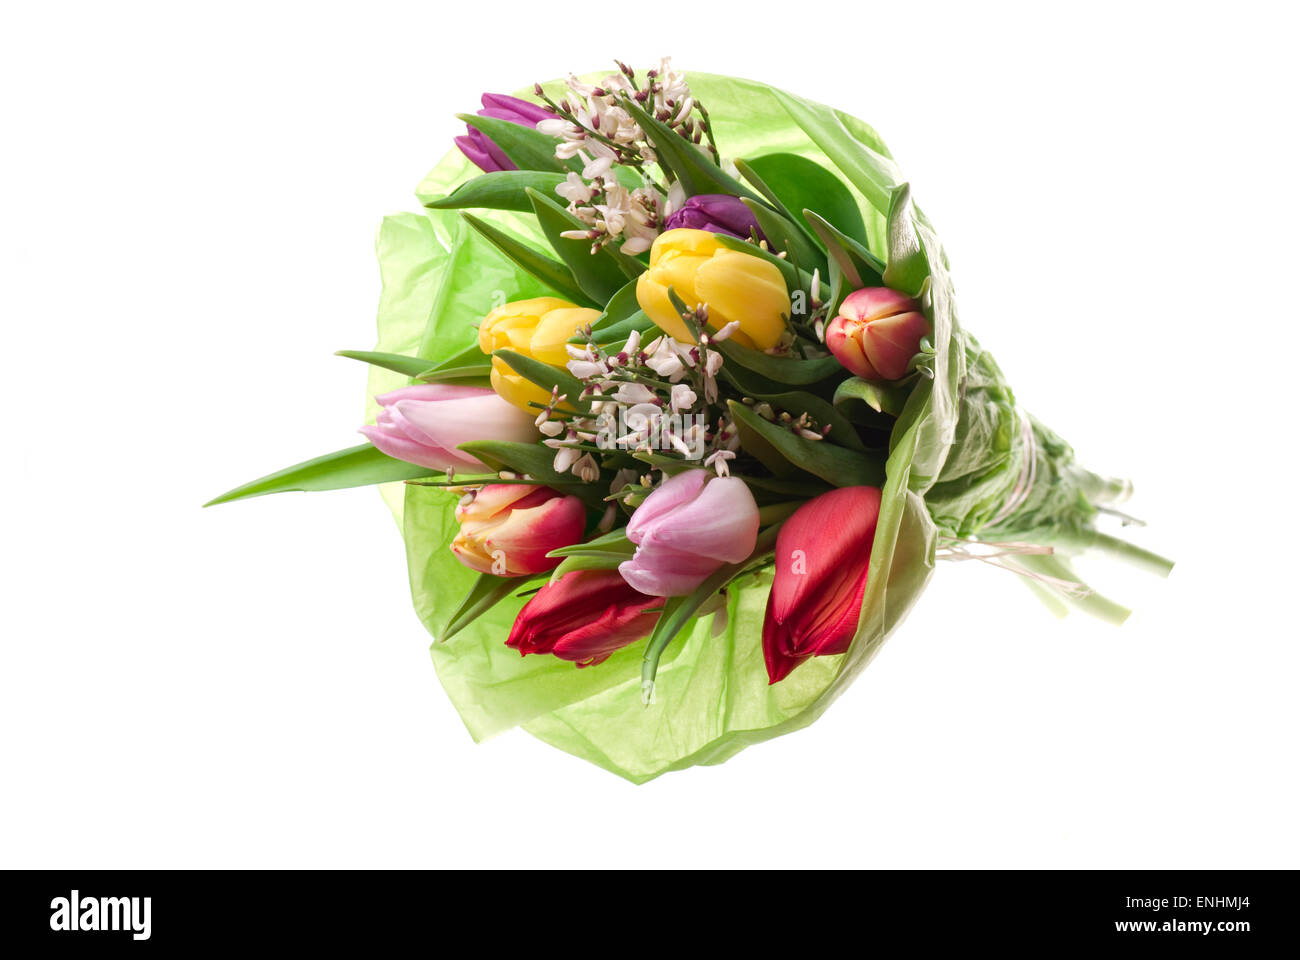 Tulip bouquet with green flower tissue paper. - Stock Image